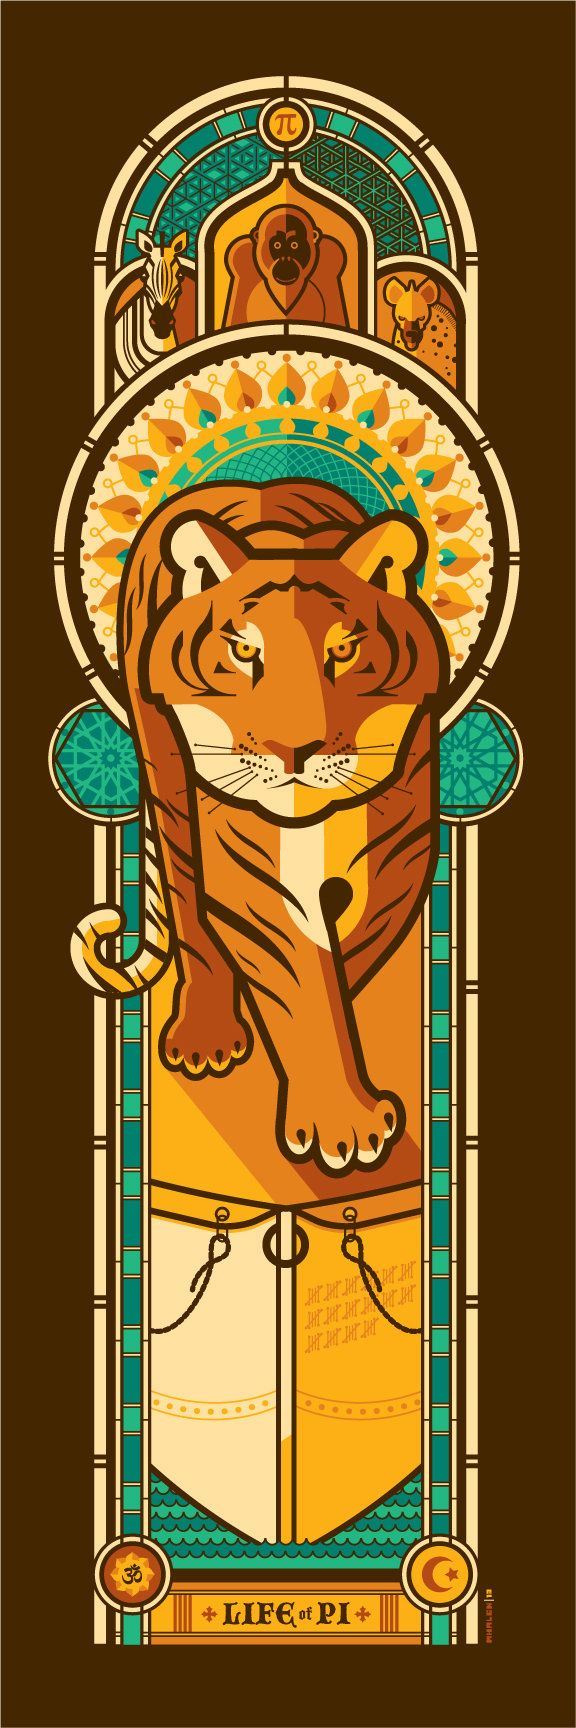 Life of Pi by artist Tom Whalen.  Creative Art Inspired by Oscar's Best Picture Nominees - My Modern Metropolis